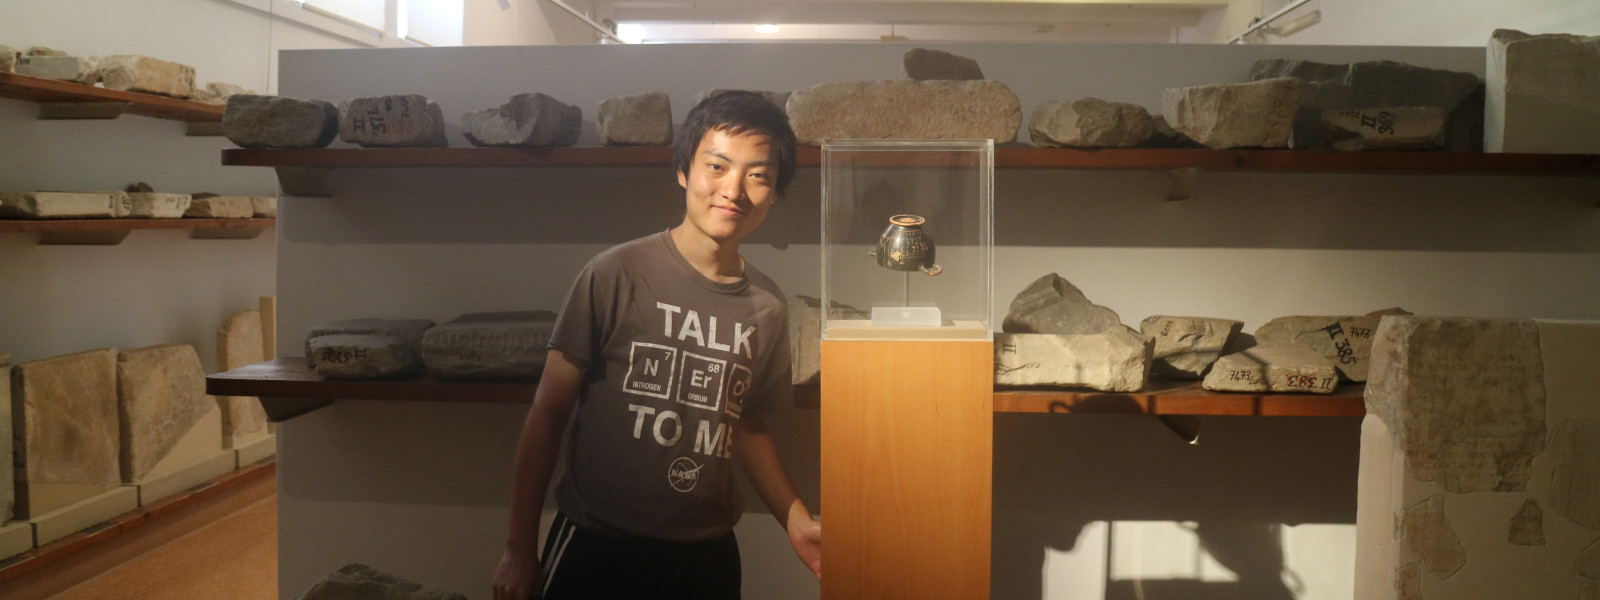 The student is standing next to a display case and there are shelves of artifacts behind him.